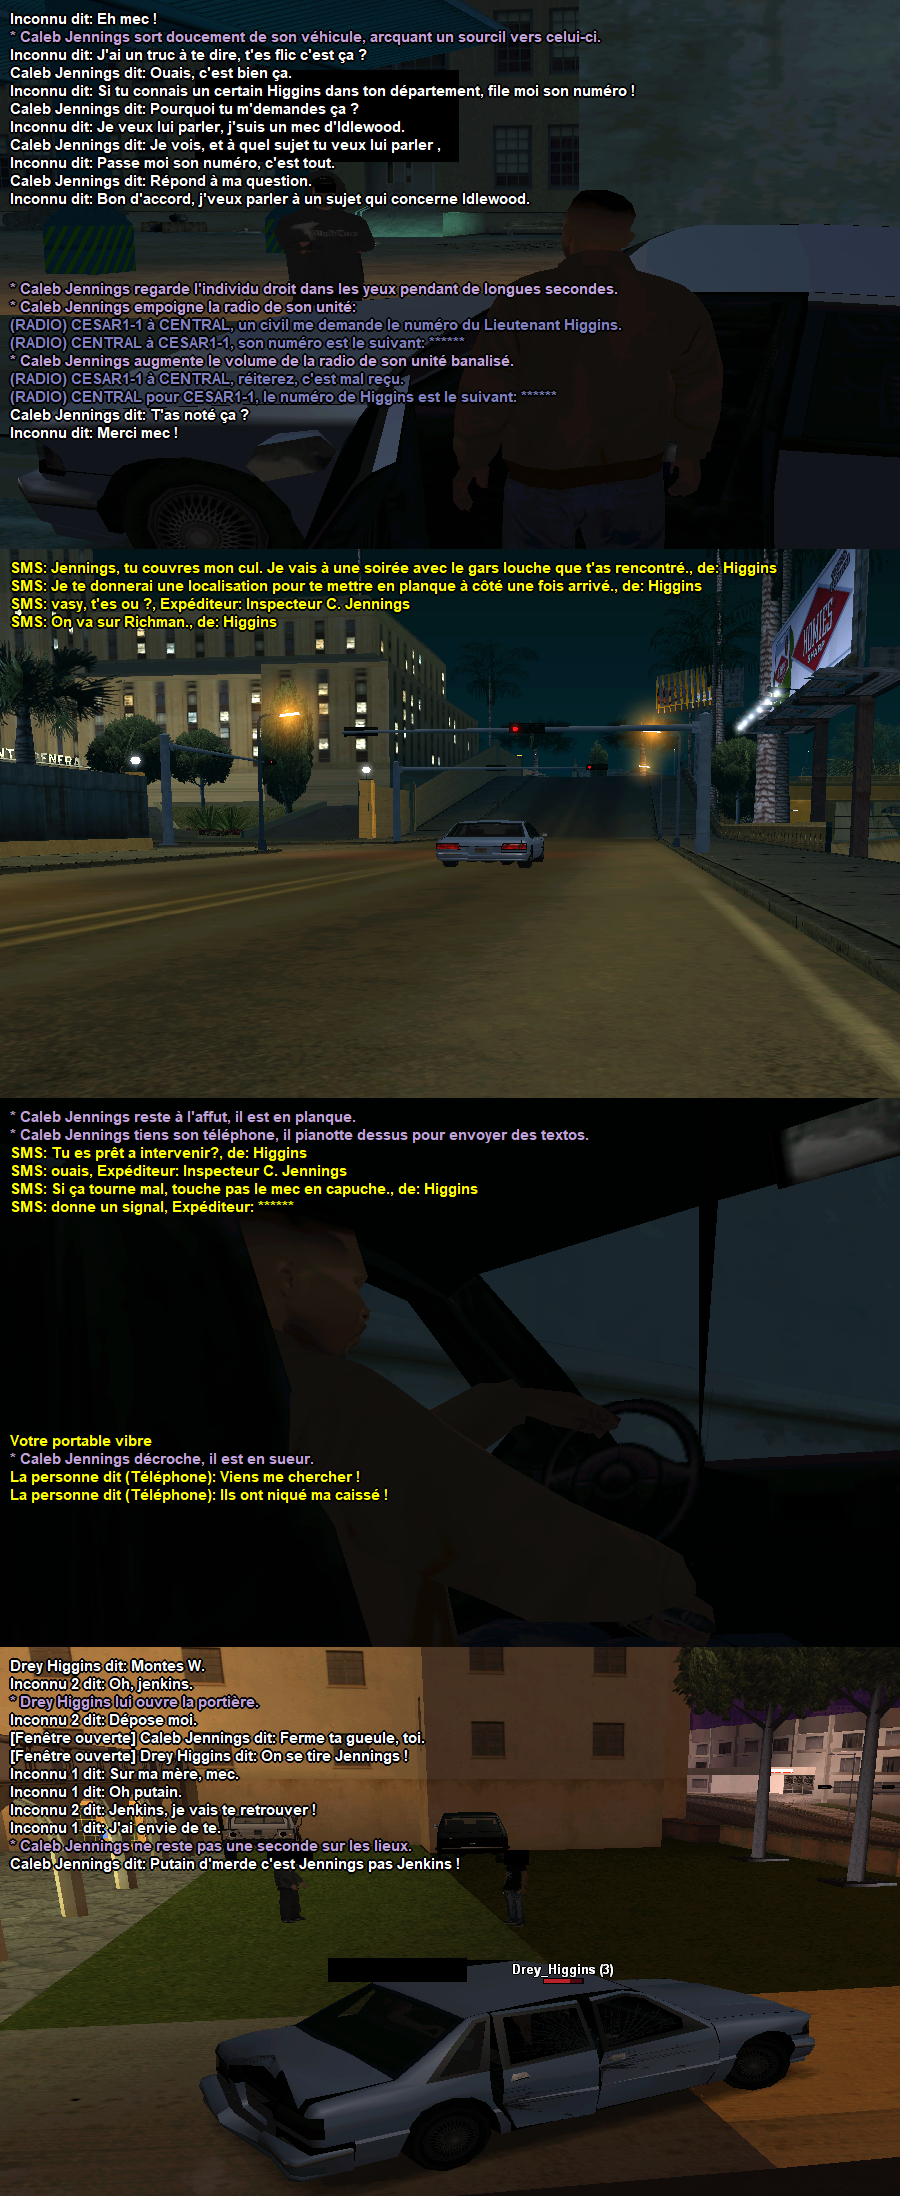 Los Santos Sheriff's Department - A tradition of service (8) - Page 16 1535678172-b